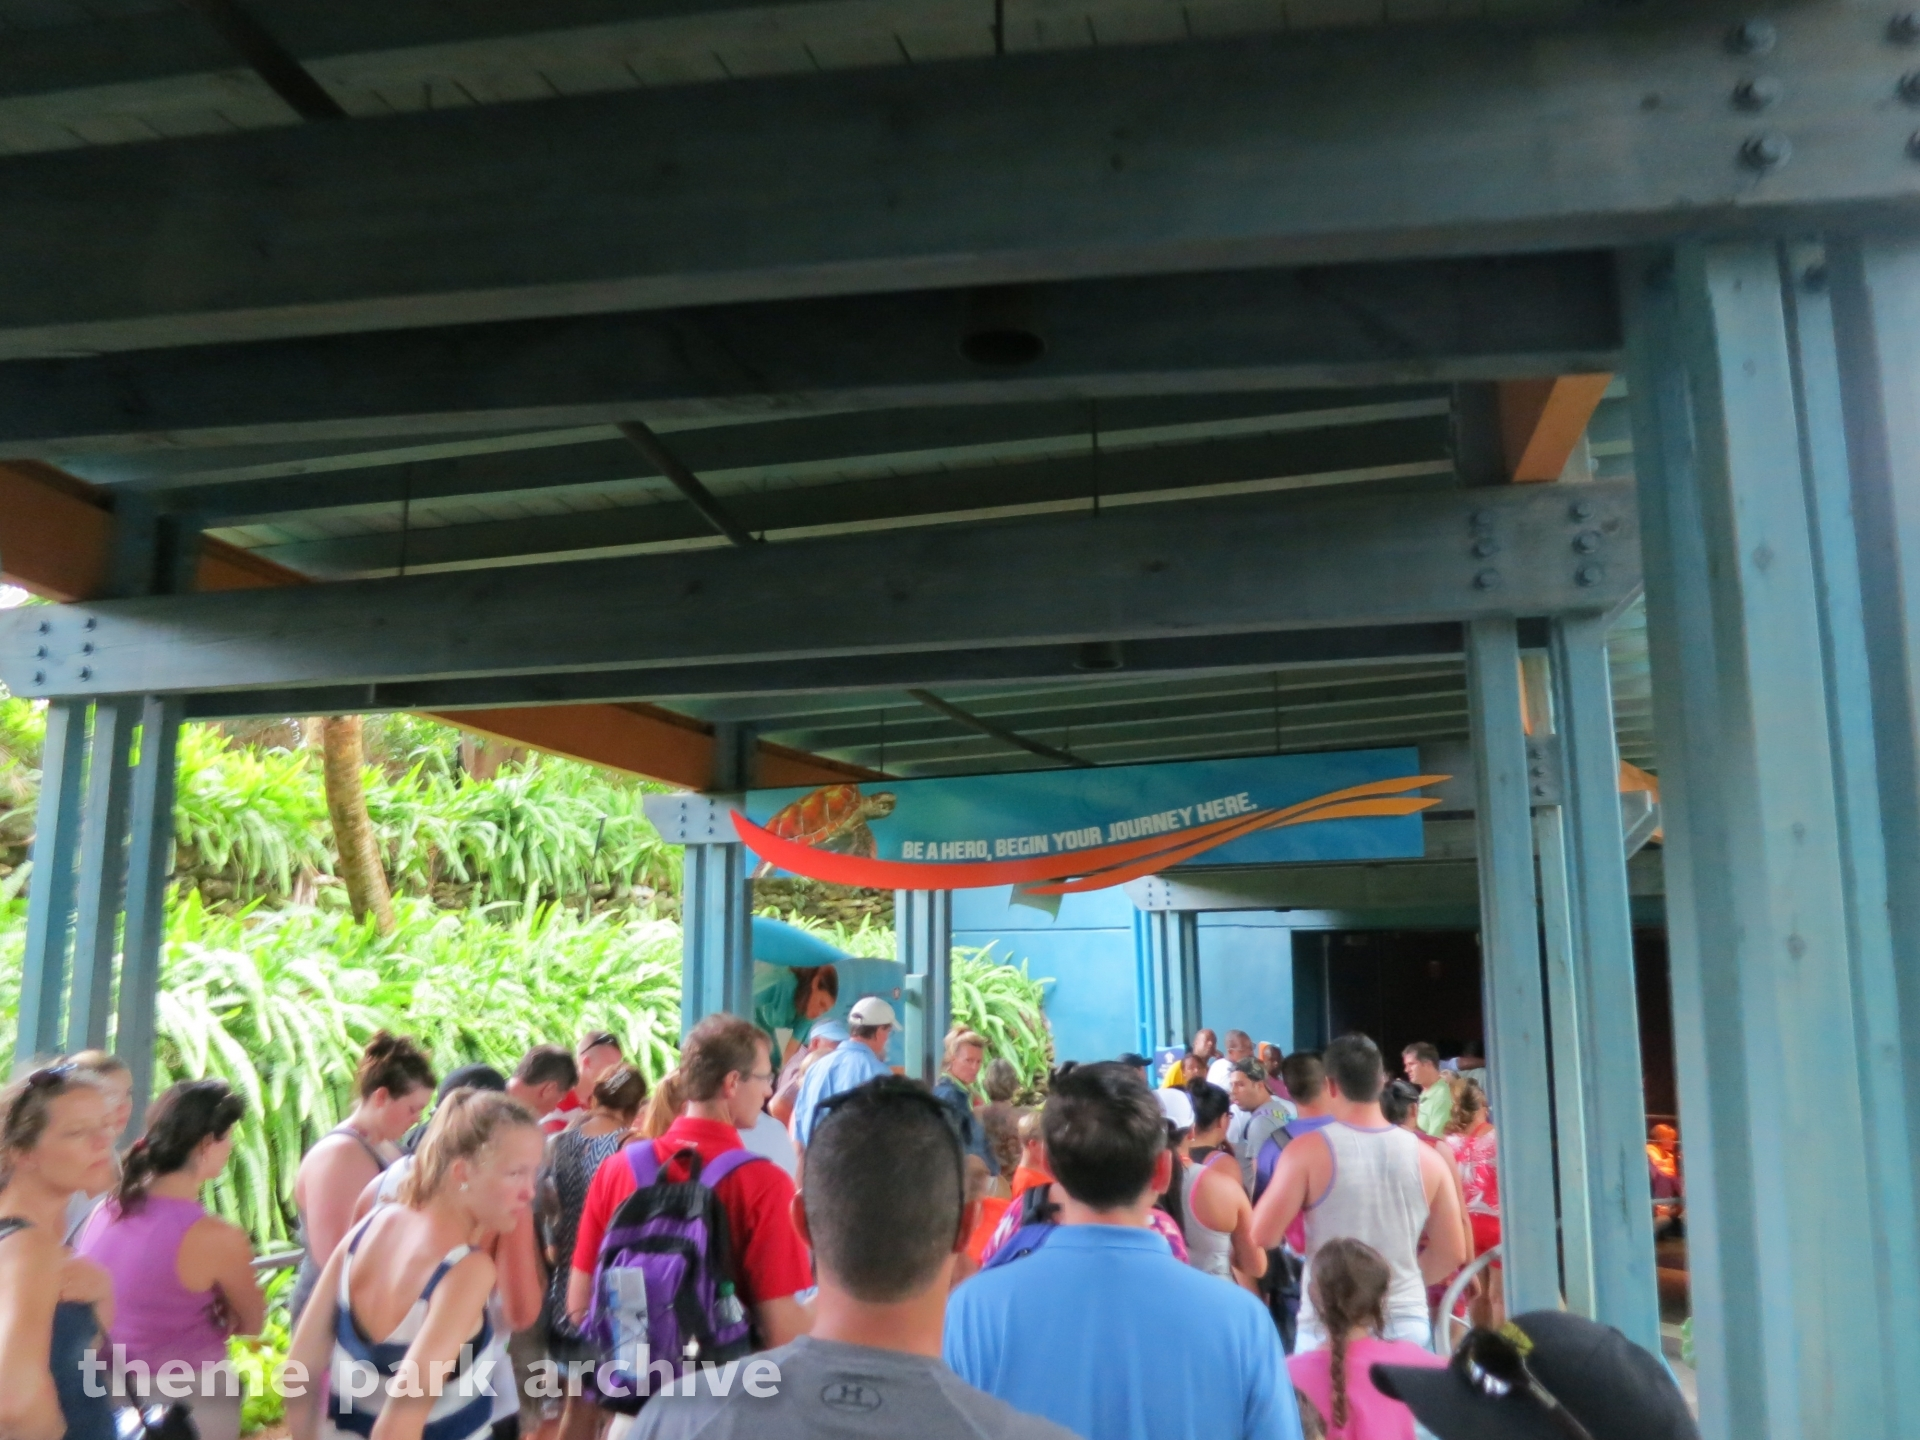 Turtle Trek at Sea World Orlando | Theme Park Archive